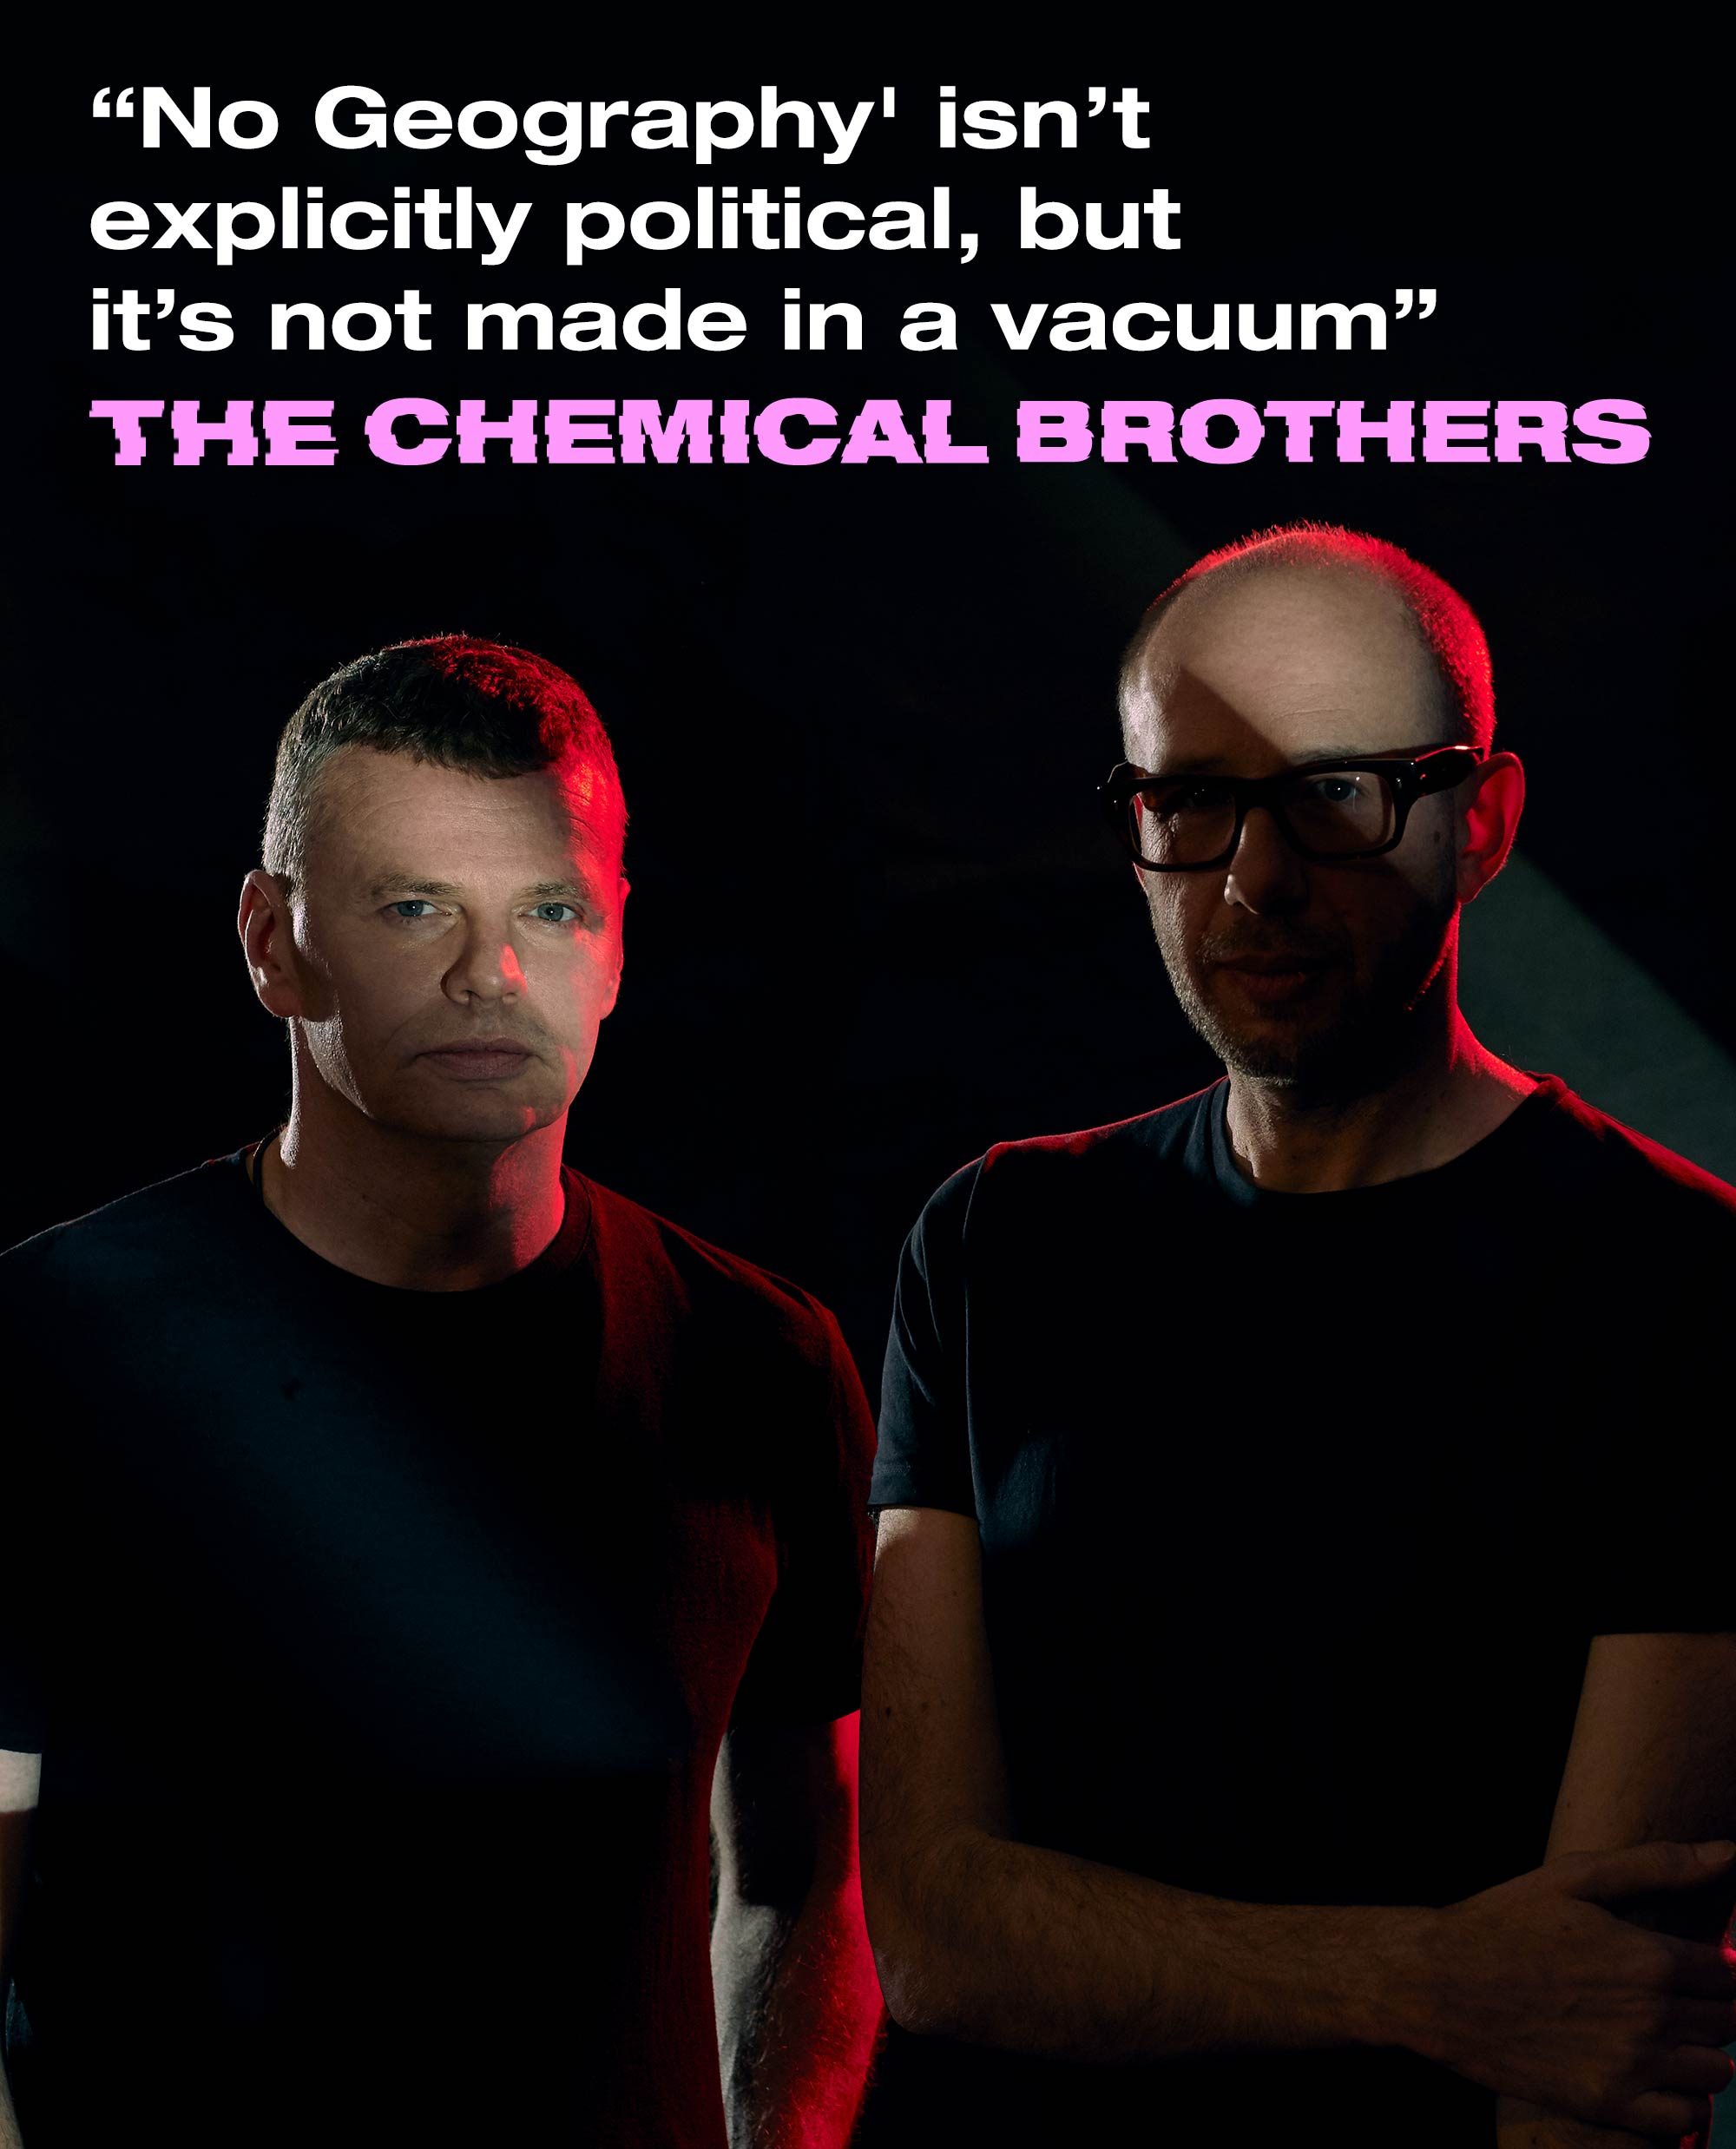 Chemical Brothers interview: The superstar DJs on fulfilling their